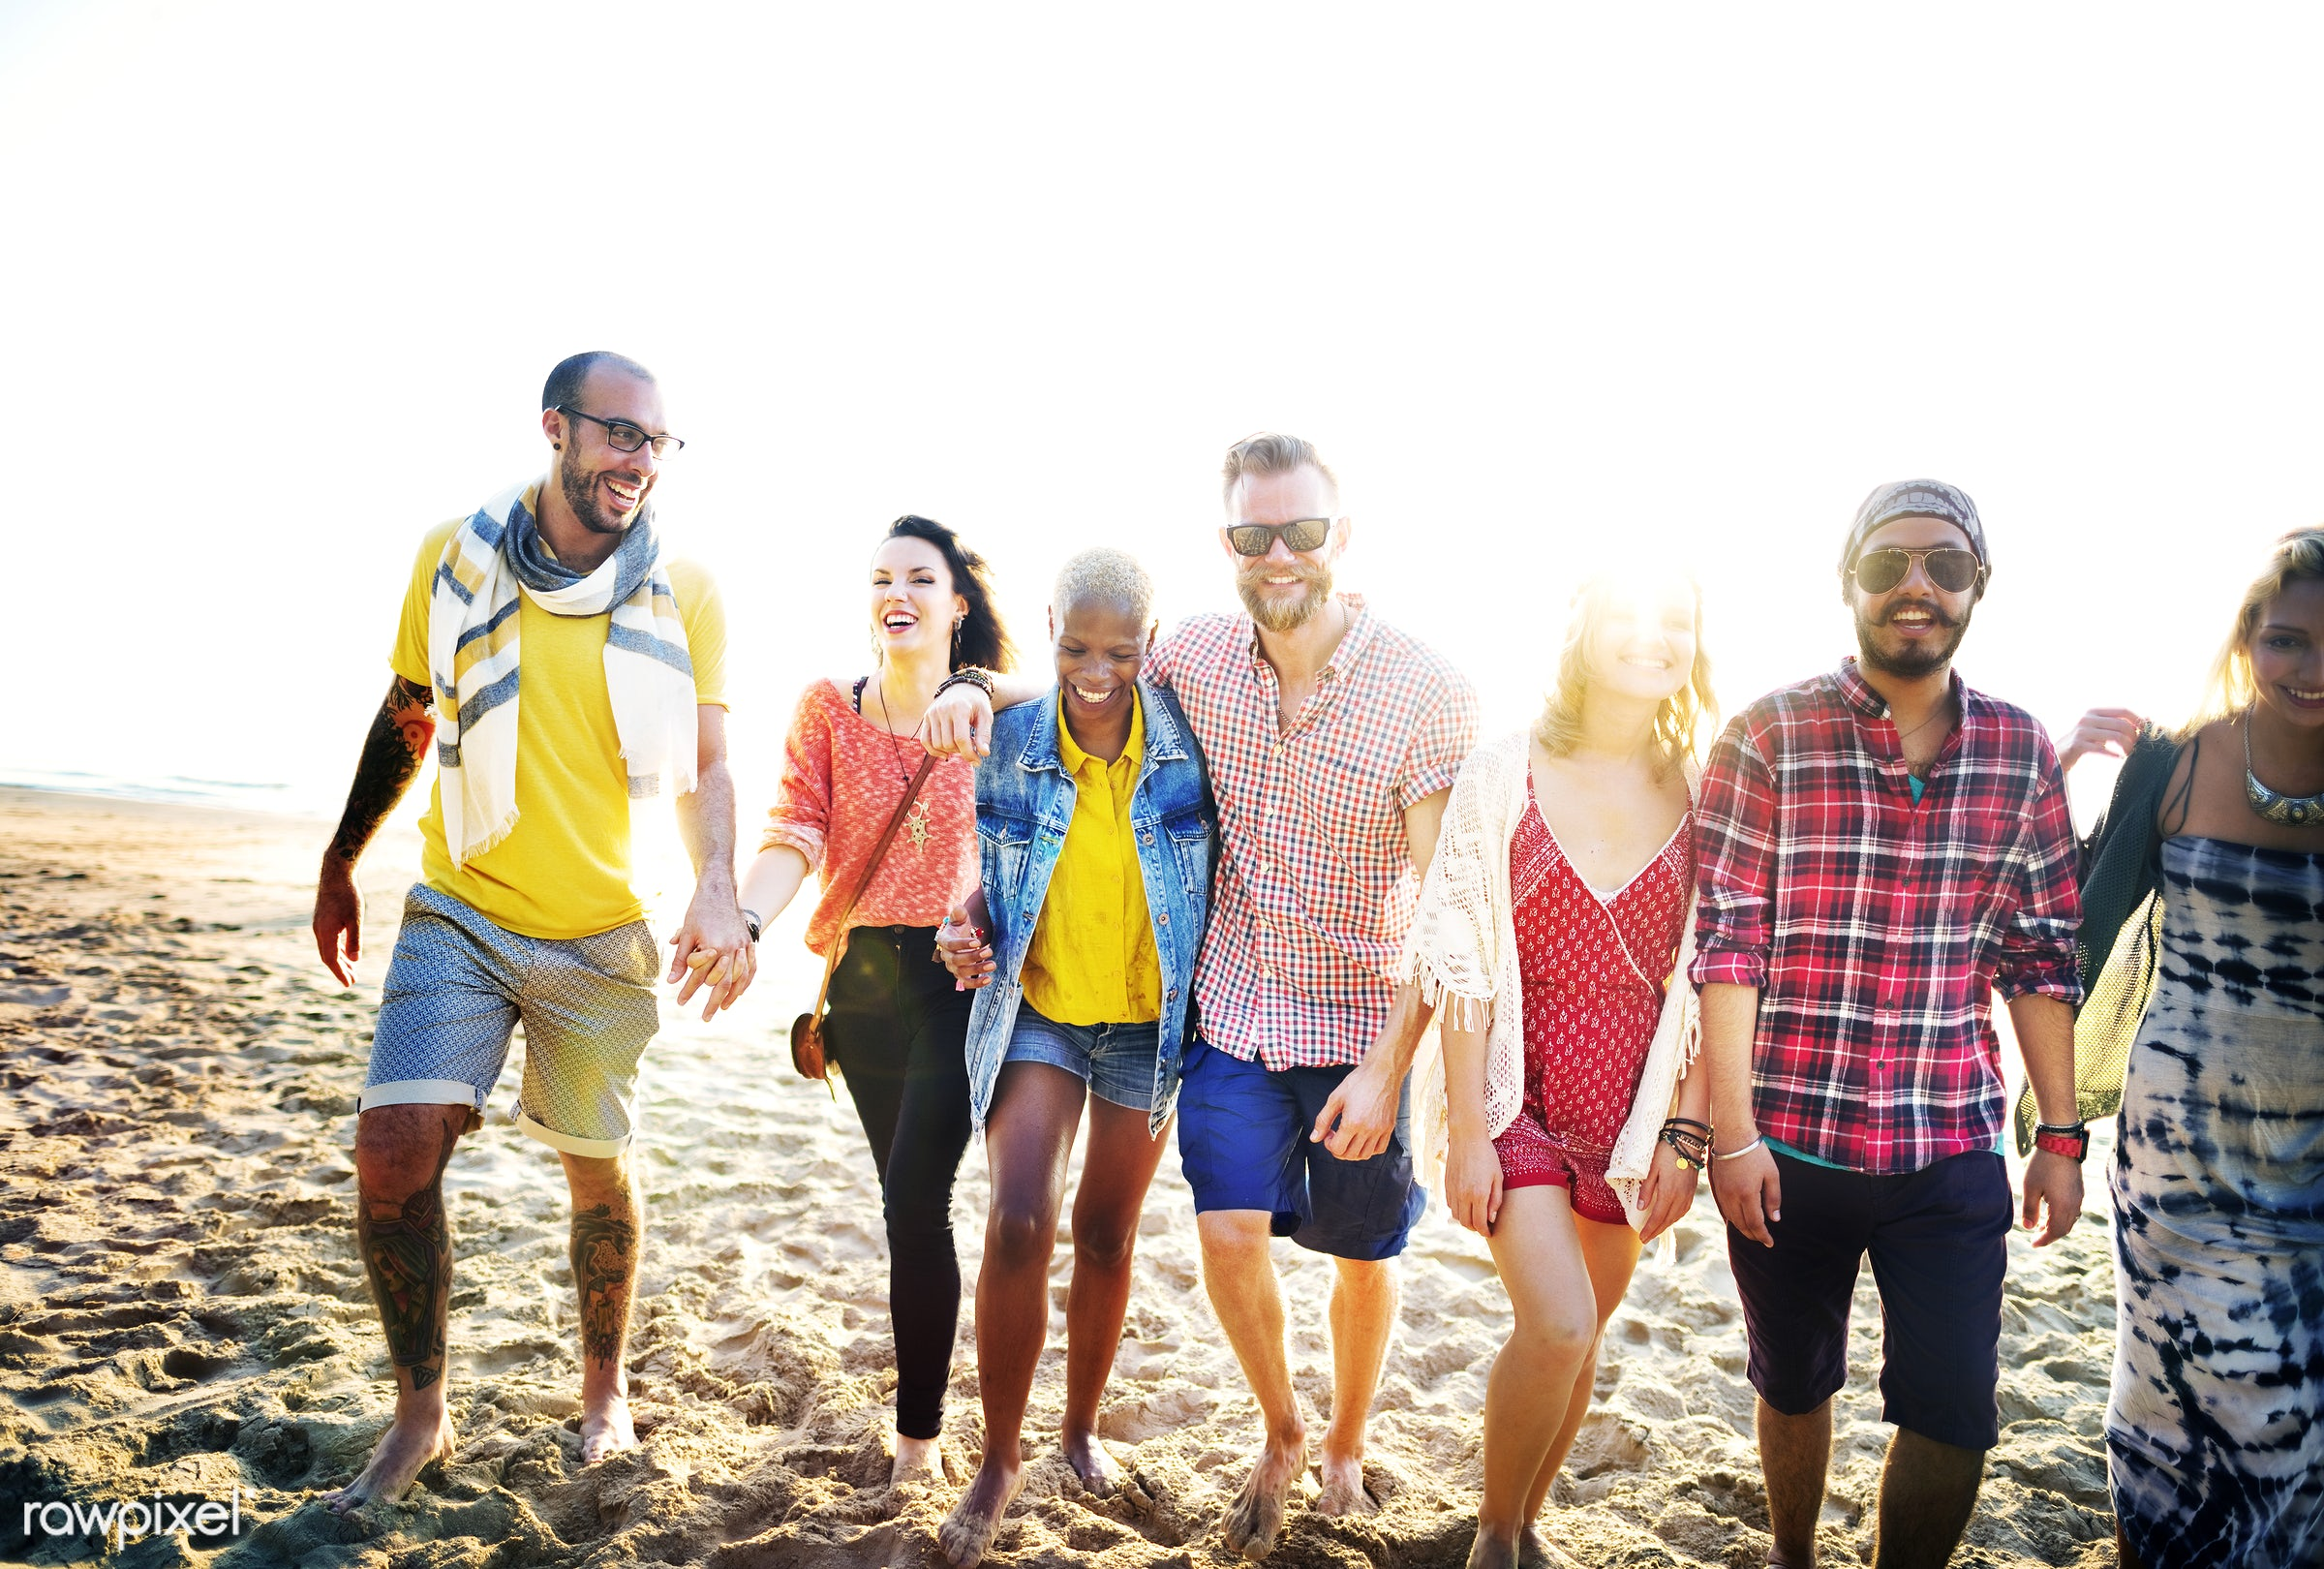 african descent, beach, bonding, bright, cheerful, close, colorful, connection, day, diverse, enjoying, ethnicity, fashion,...